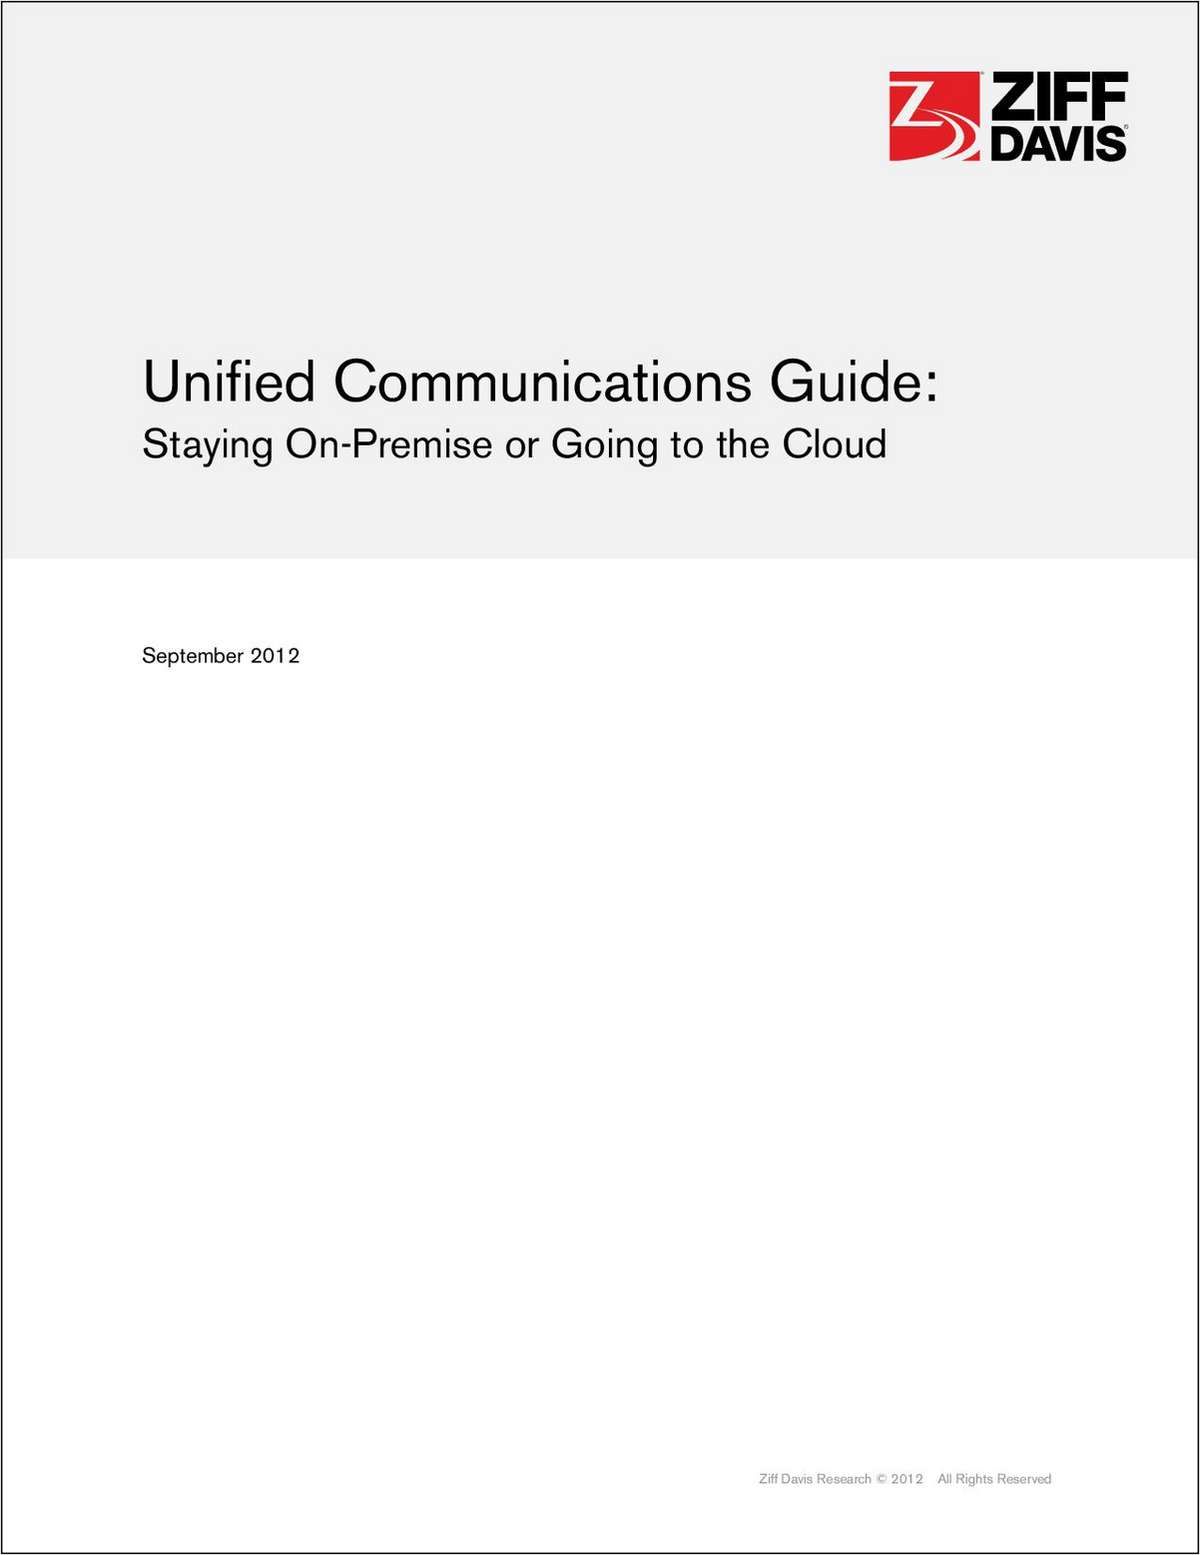 Unified Communications Guide: Staying On-Premise or Going to the Cloud